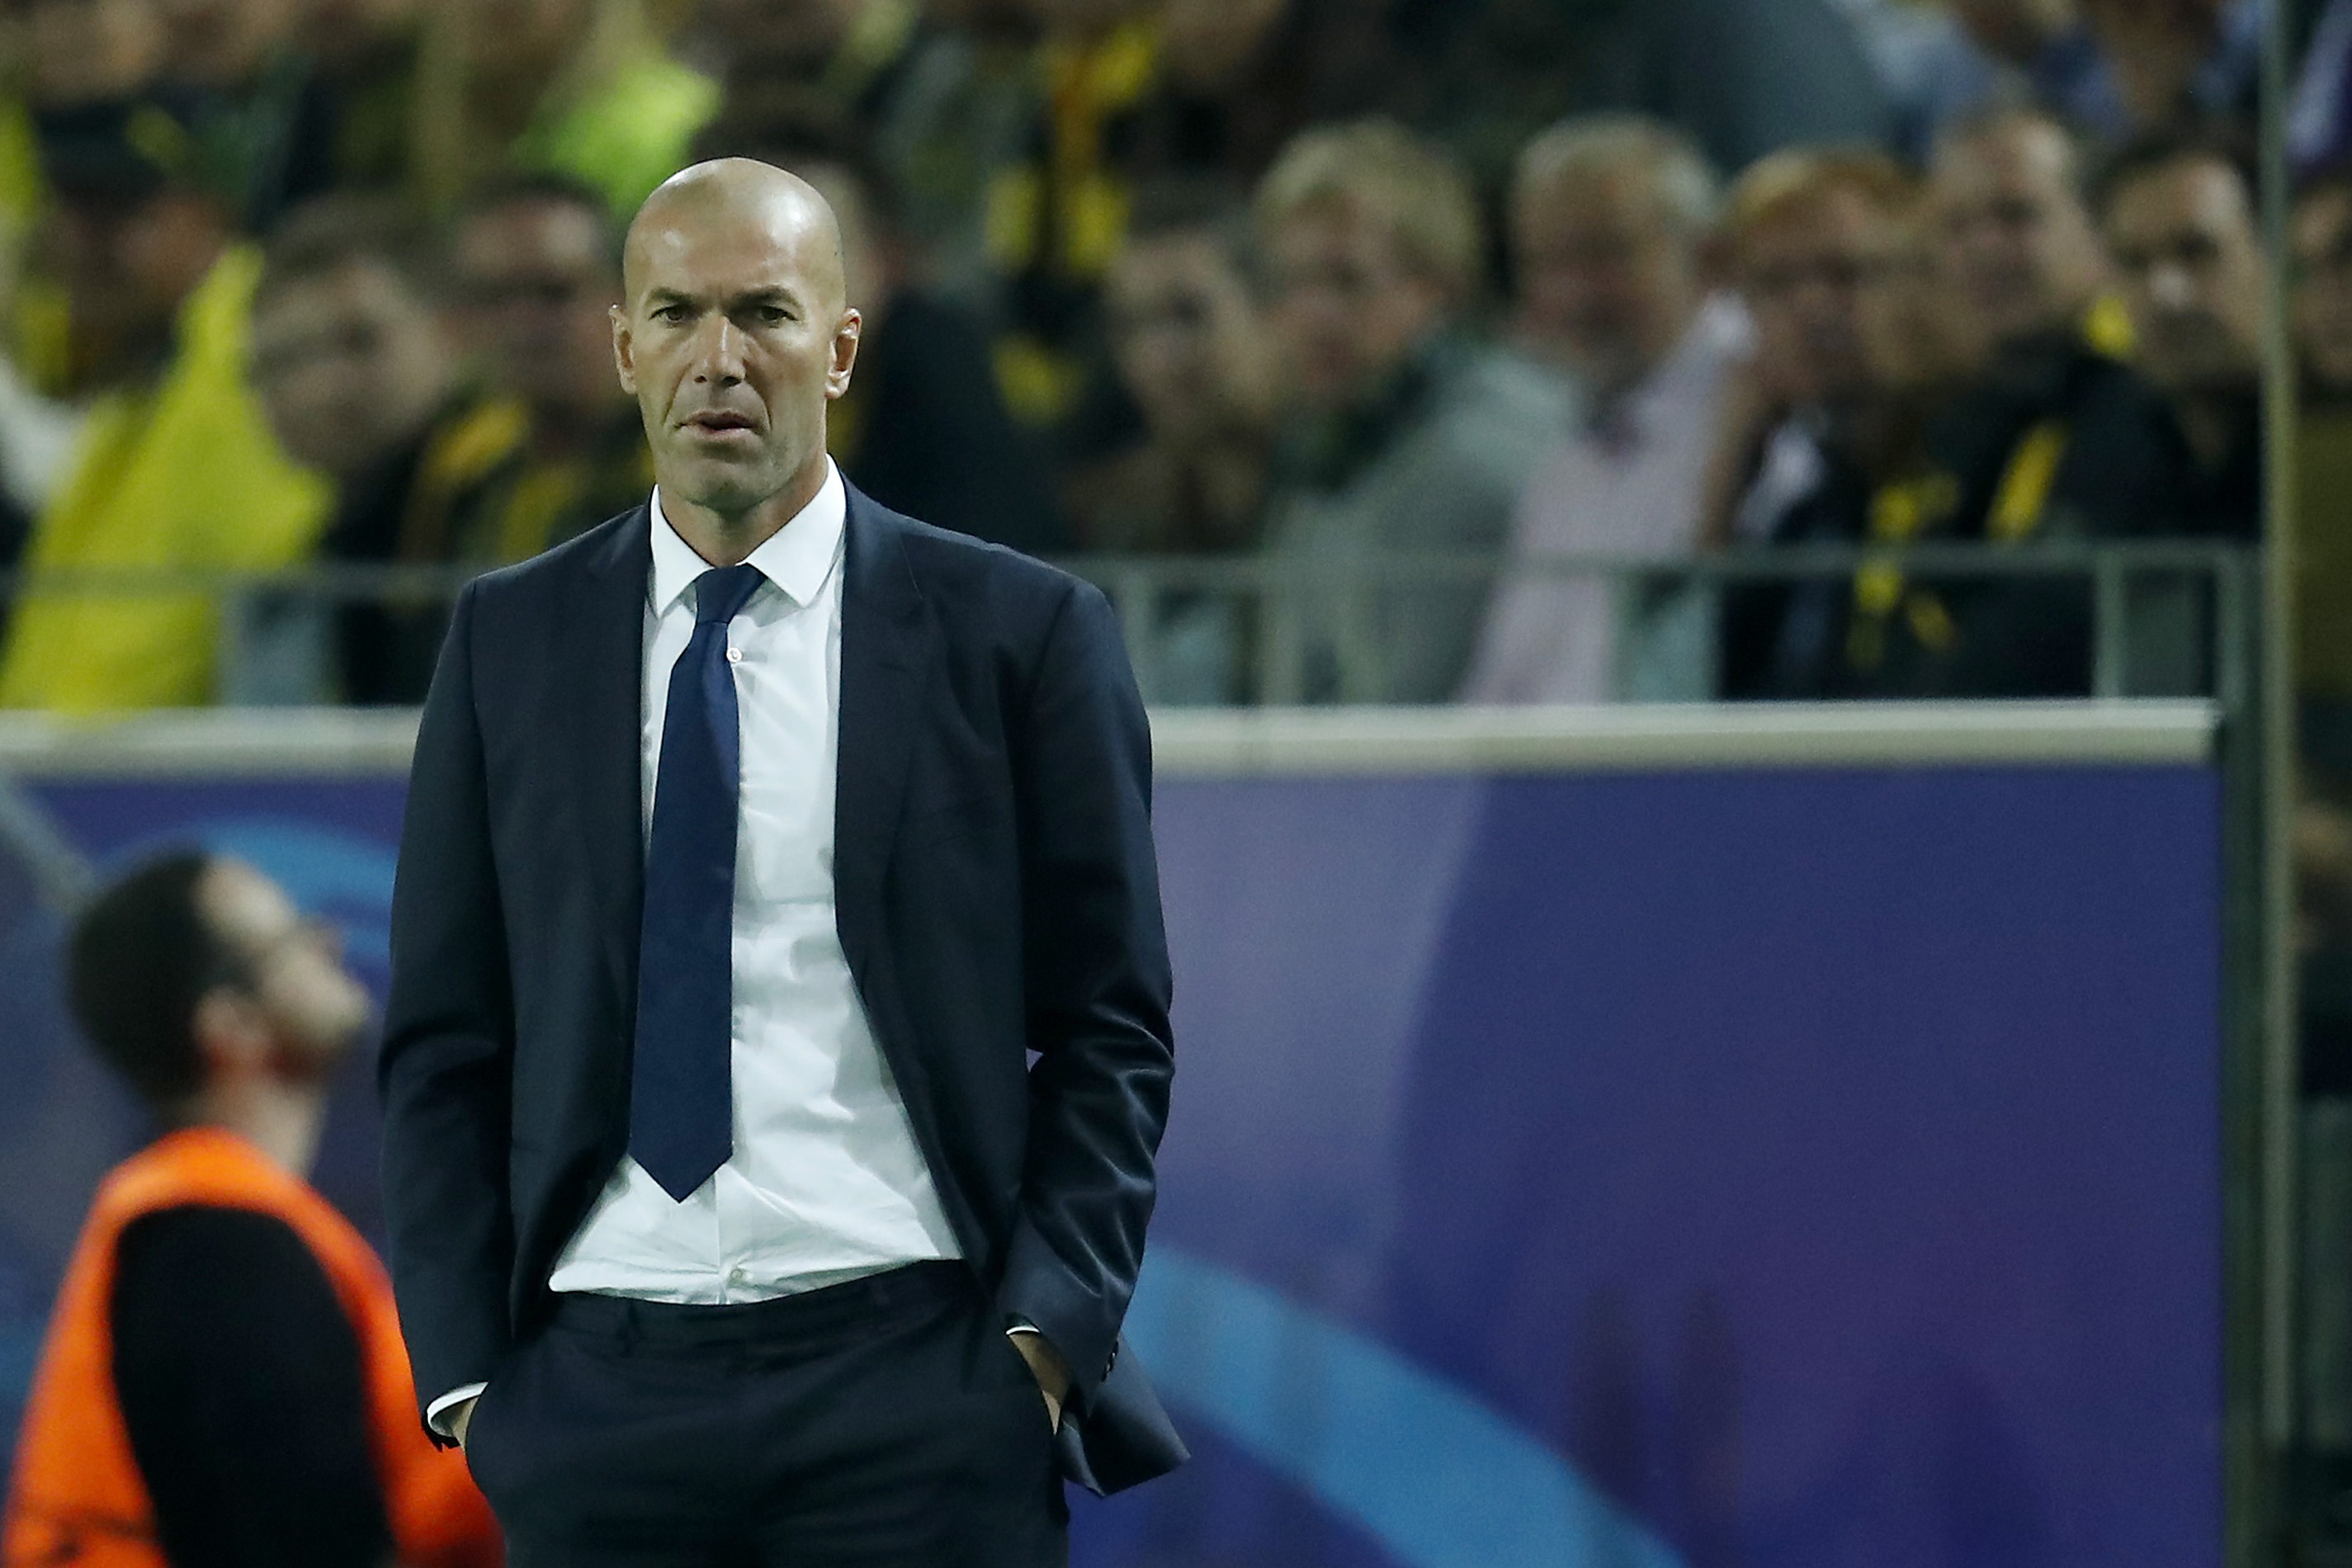 Real Madrid have a big midfield problem as another player goes down injured